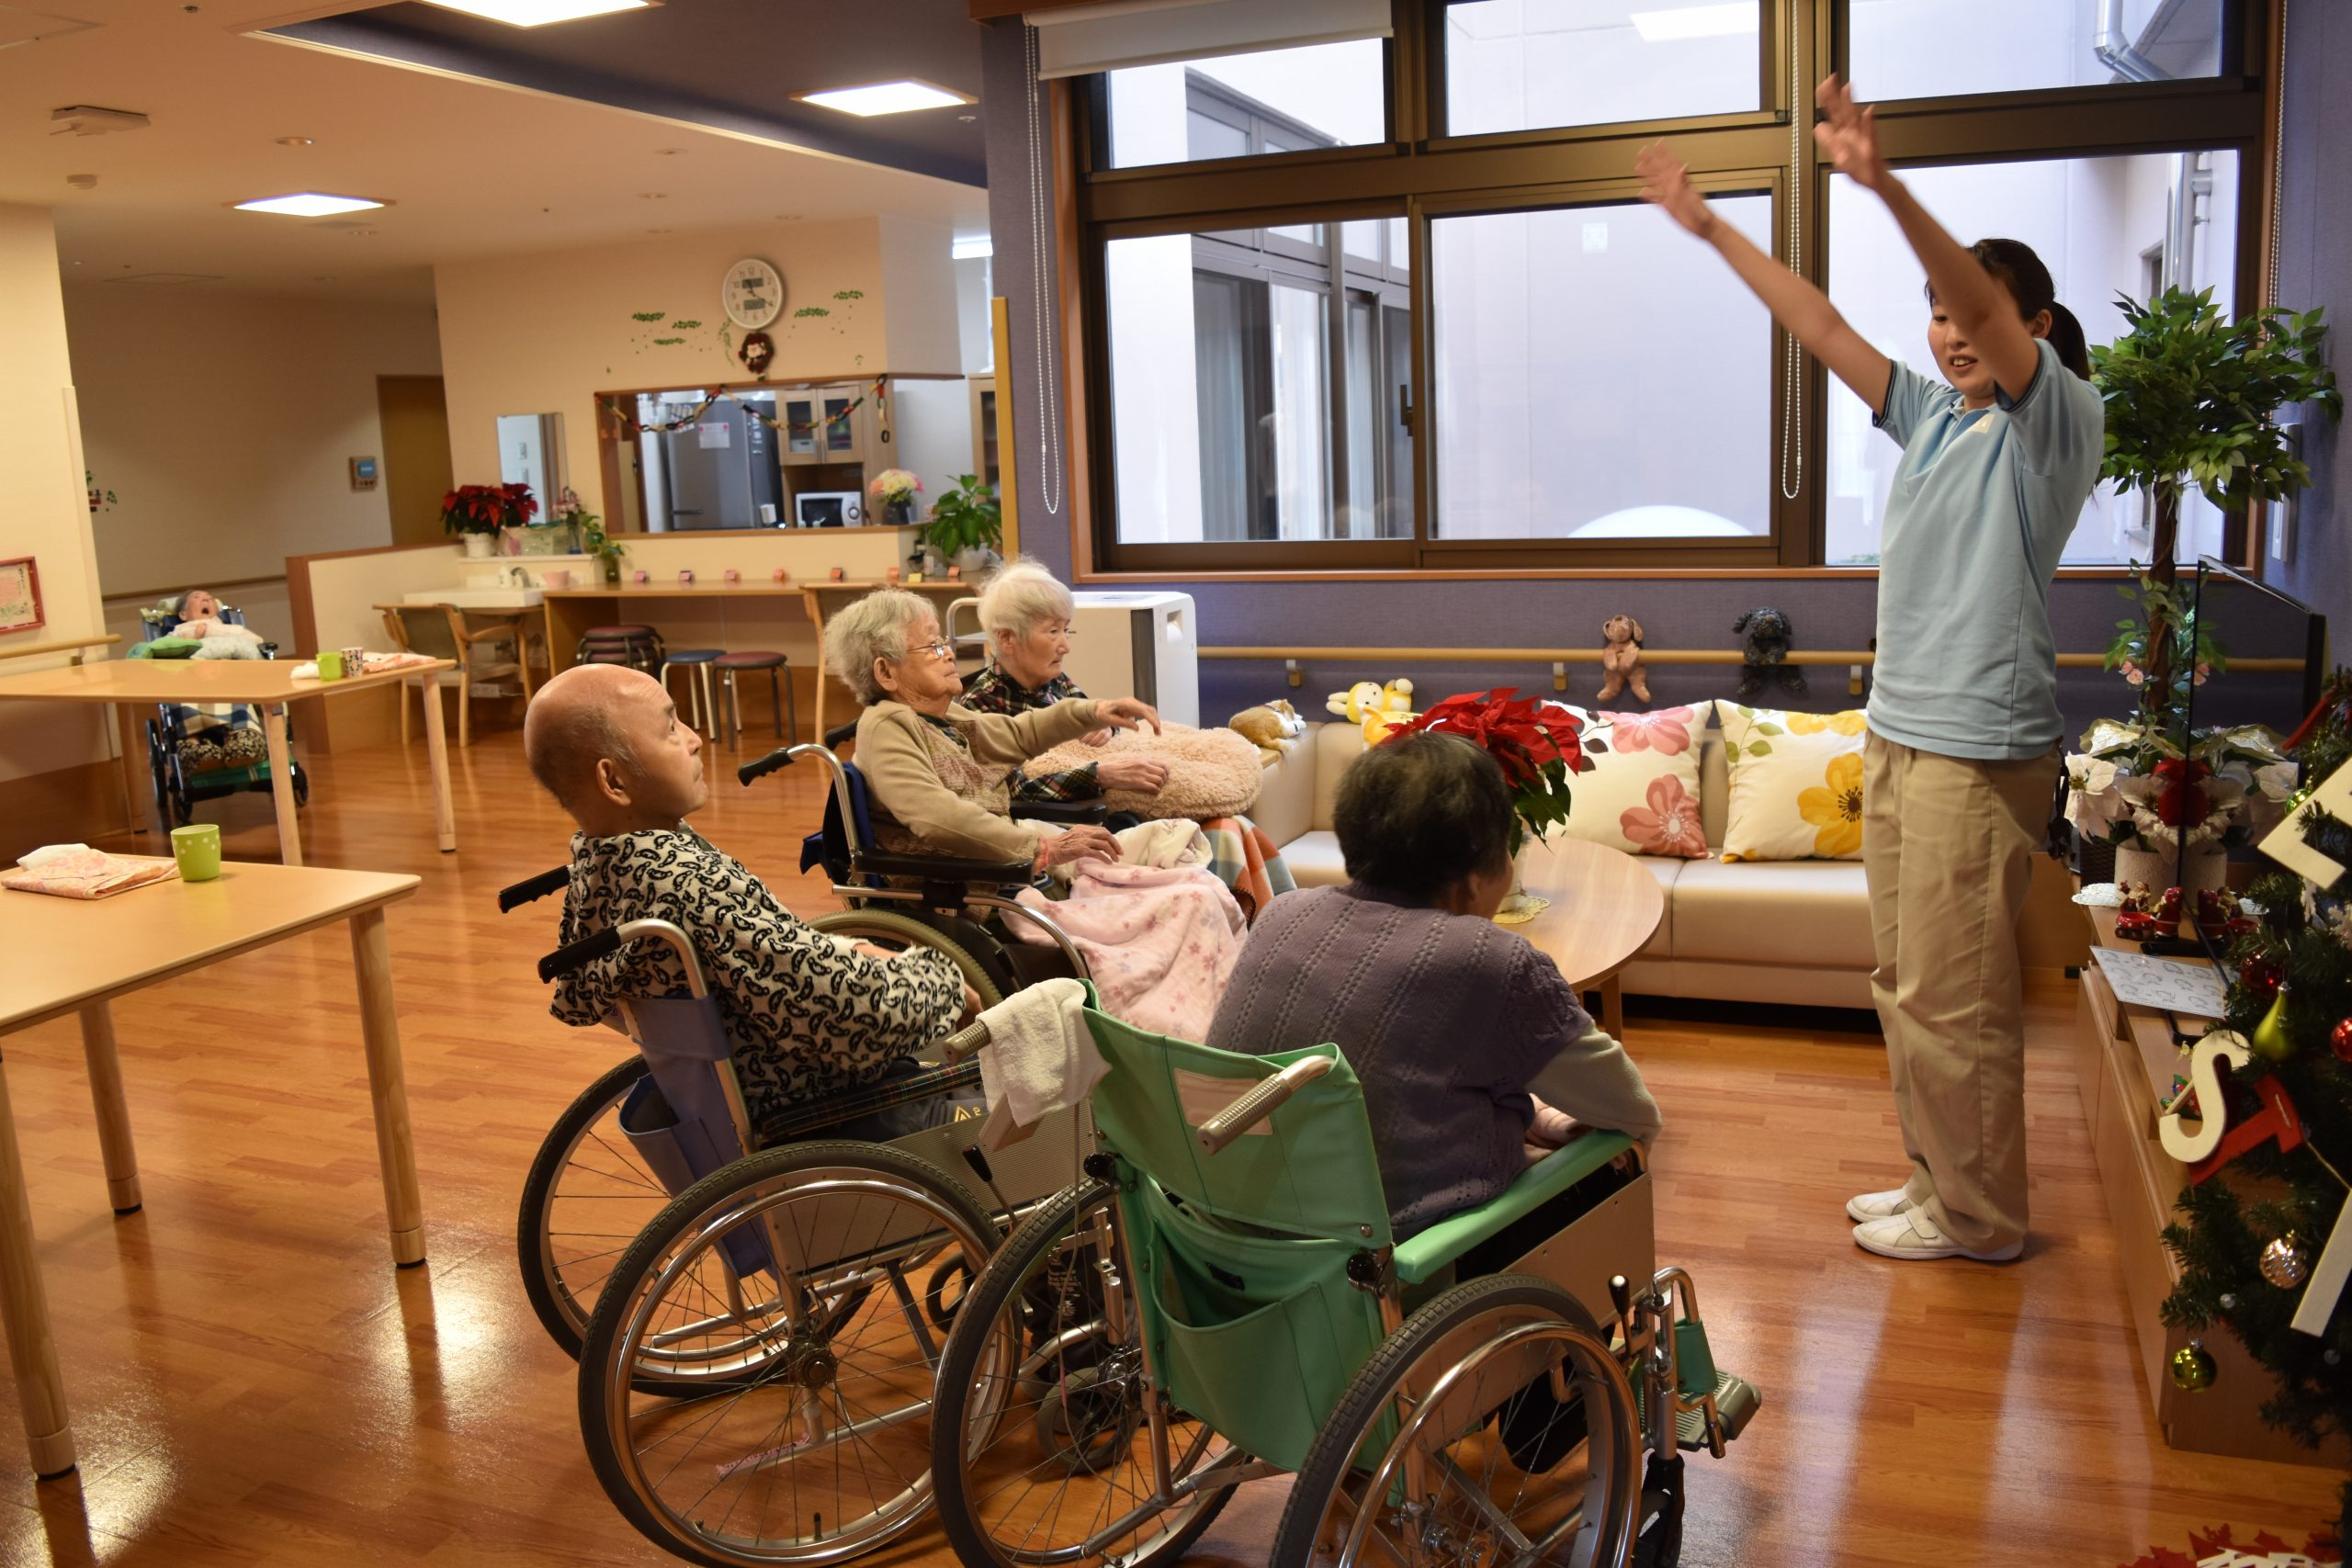 This is a job to provide high-quality nursing care services for the elderly.